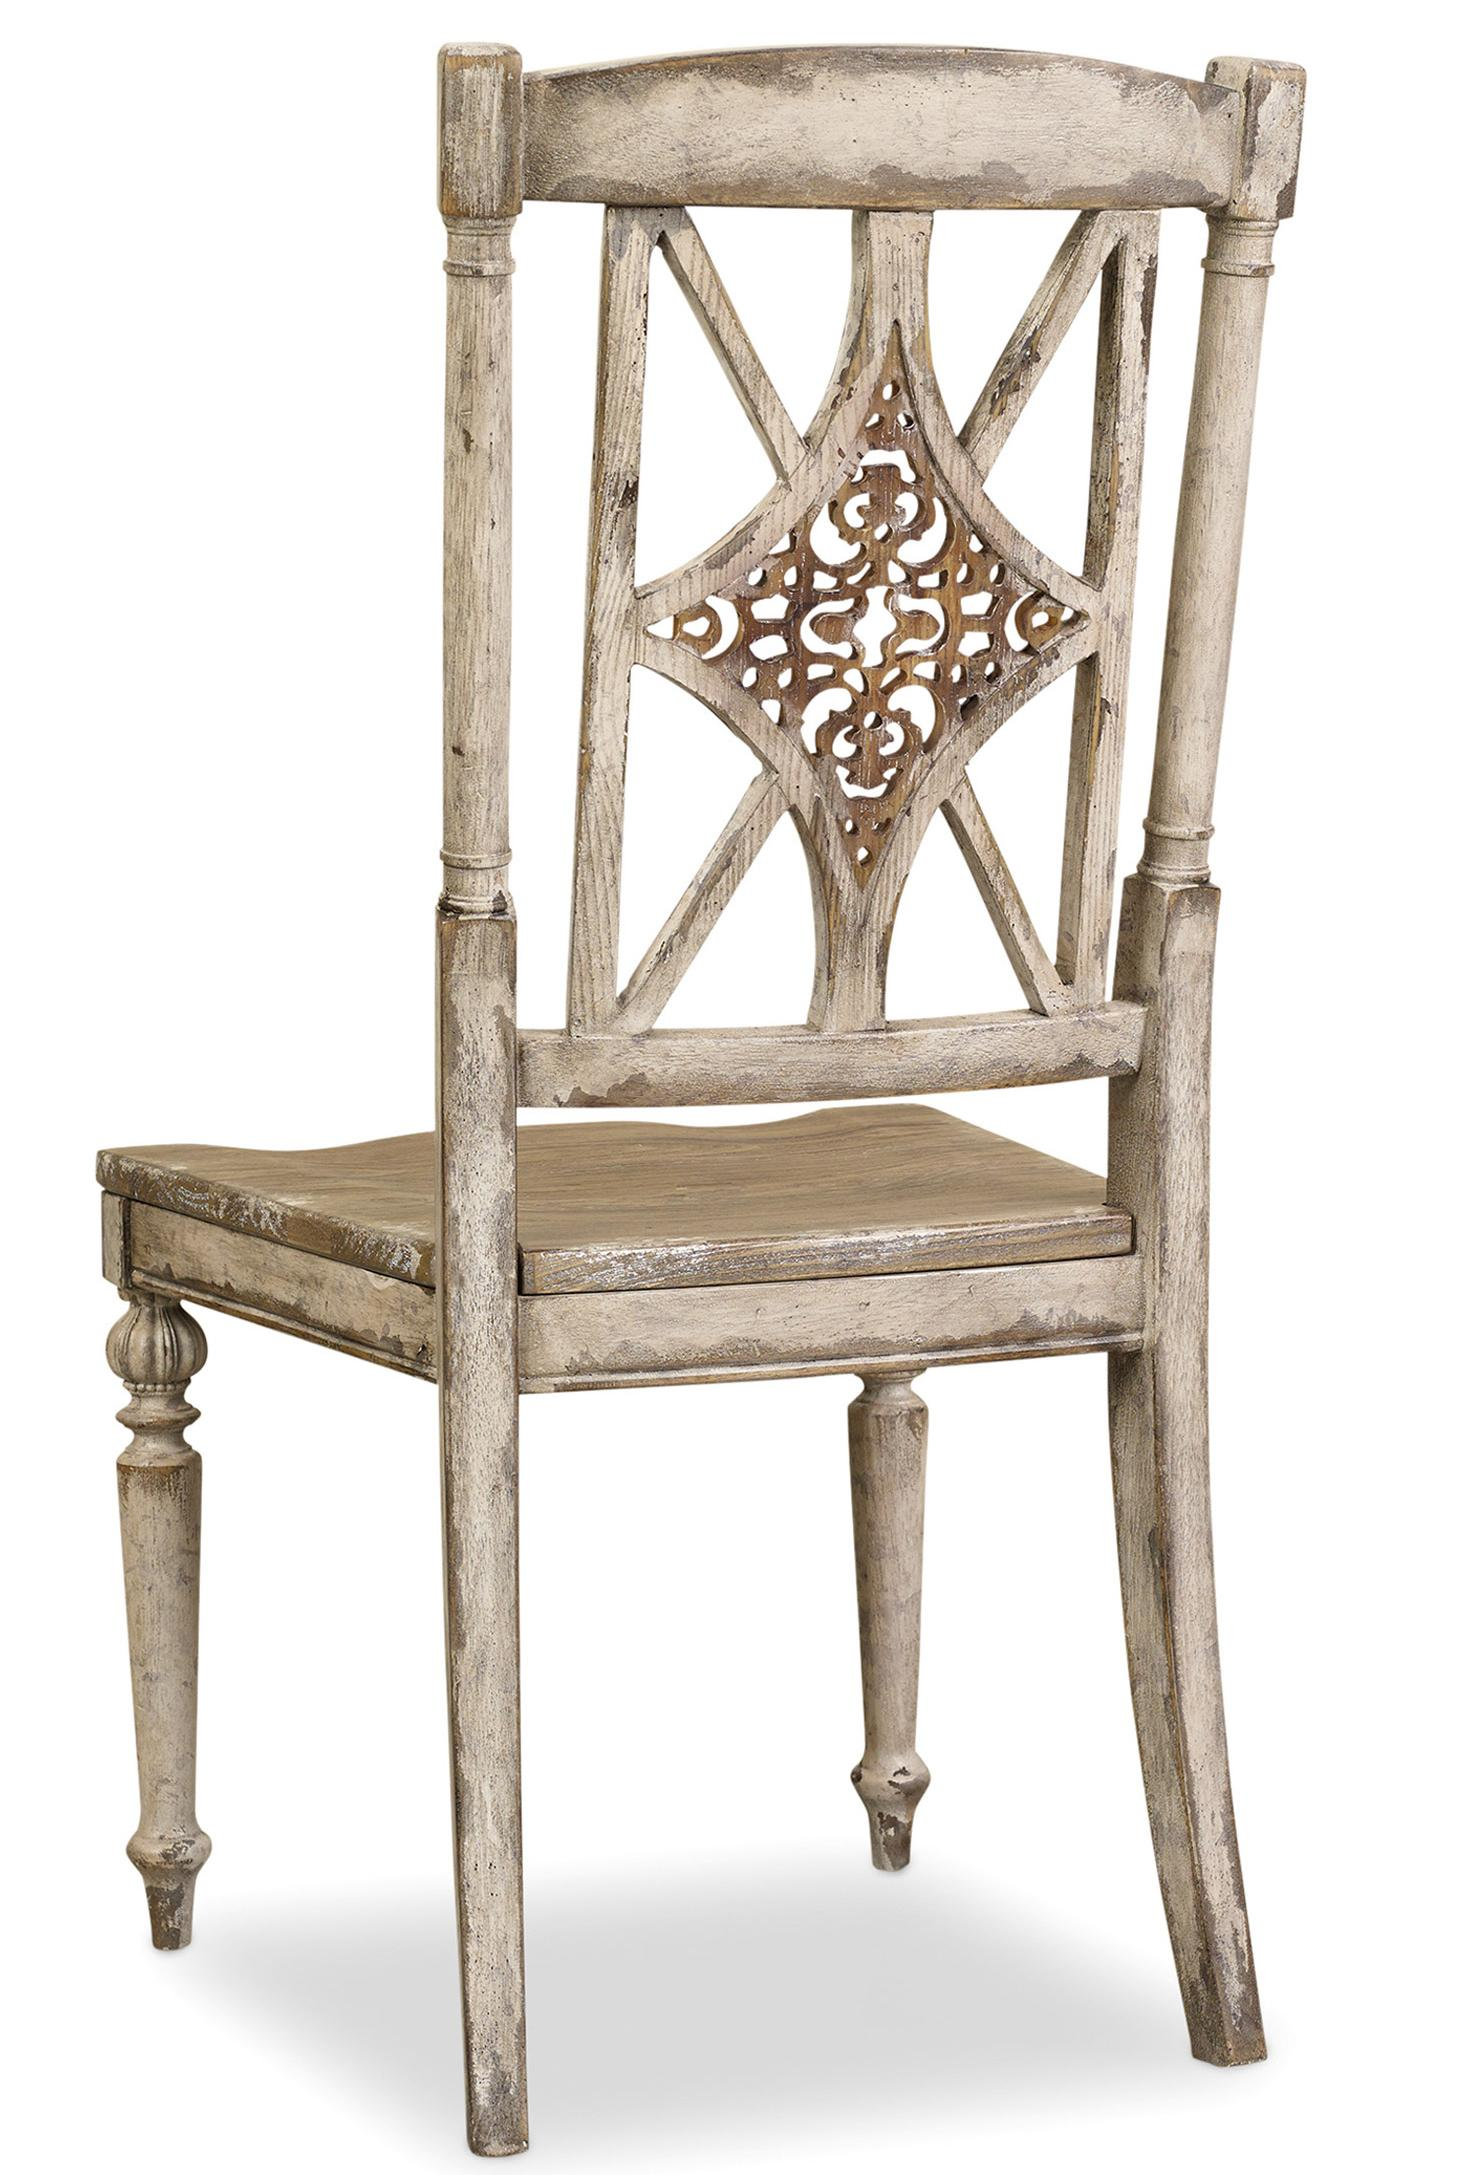 Chatelet Fretback Side Chair with Turned Legs at Williams & Kay